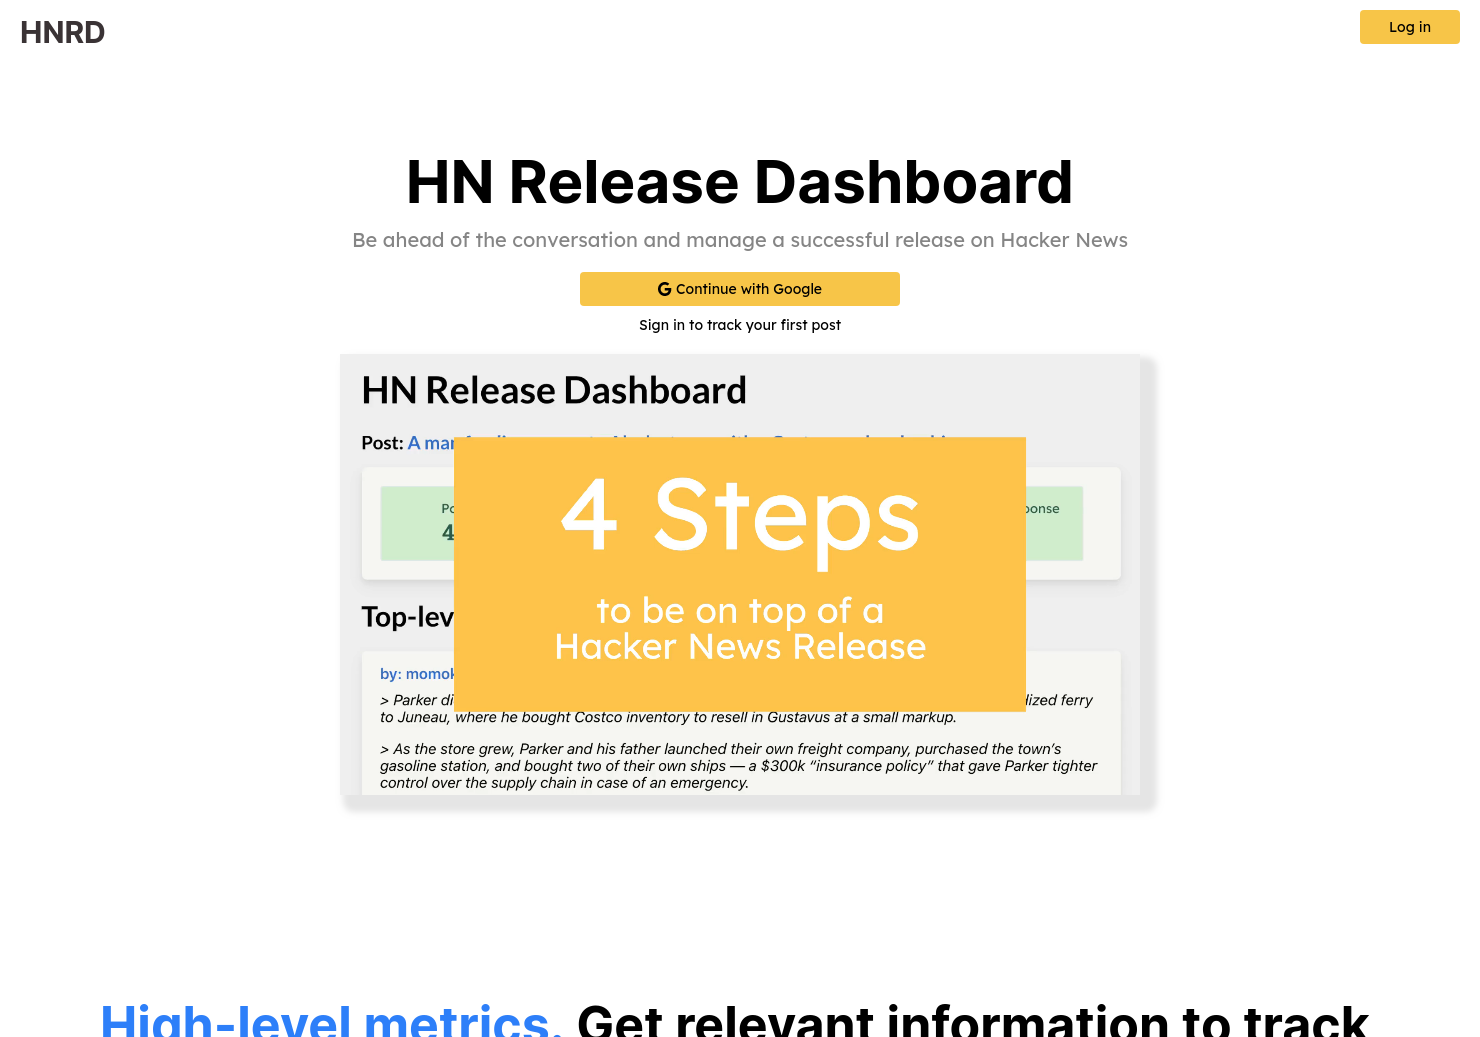 Hacker News Release Dashboard